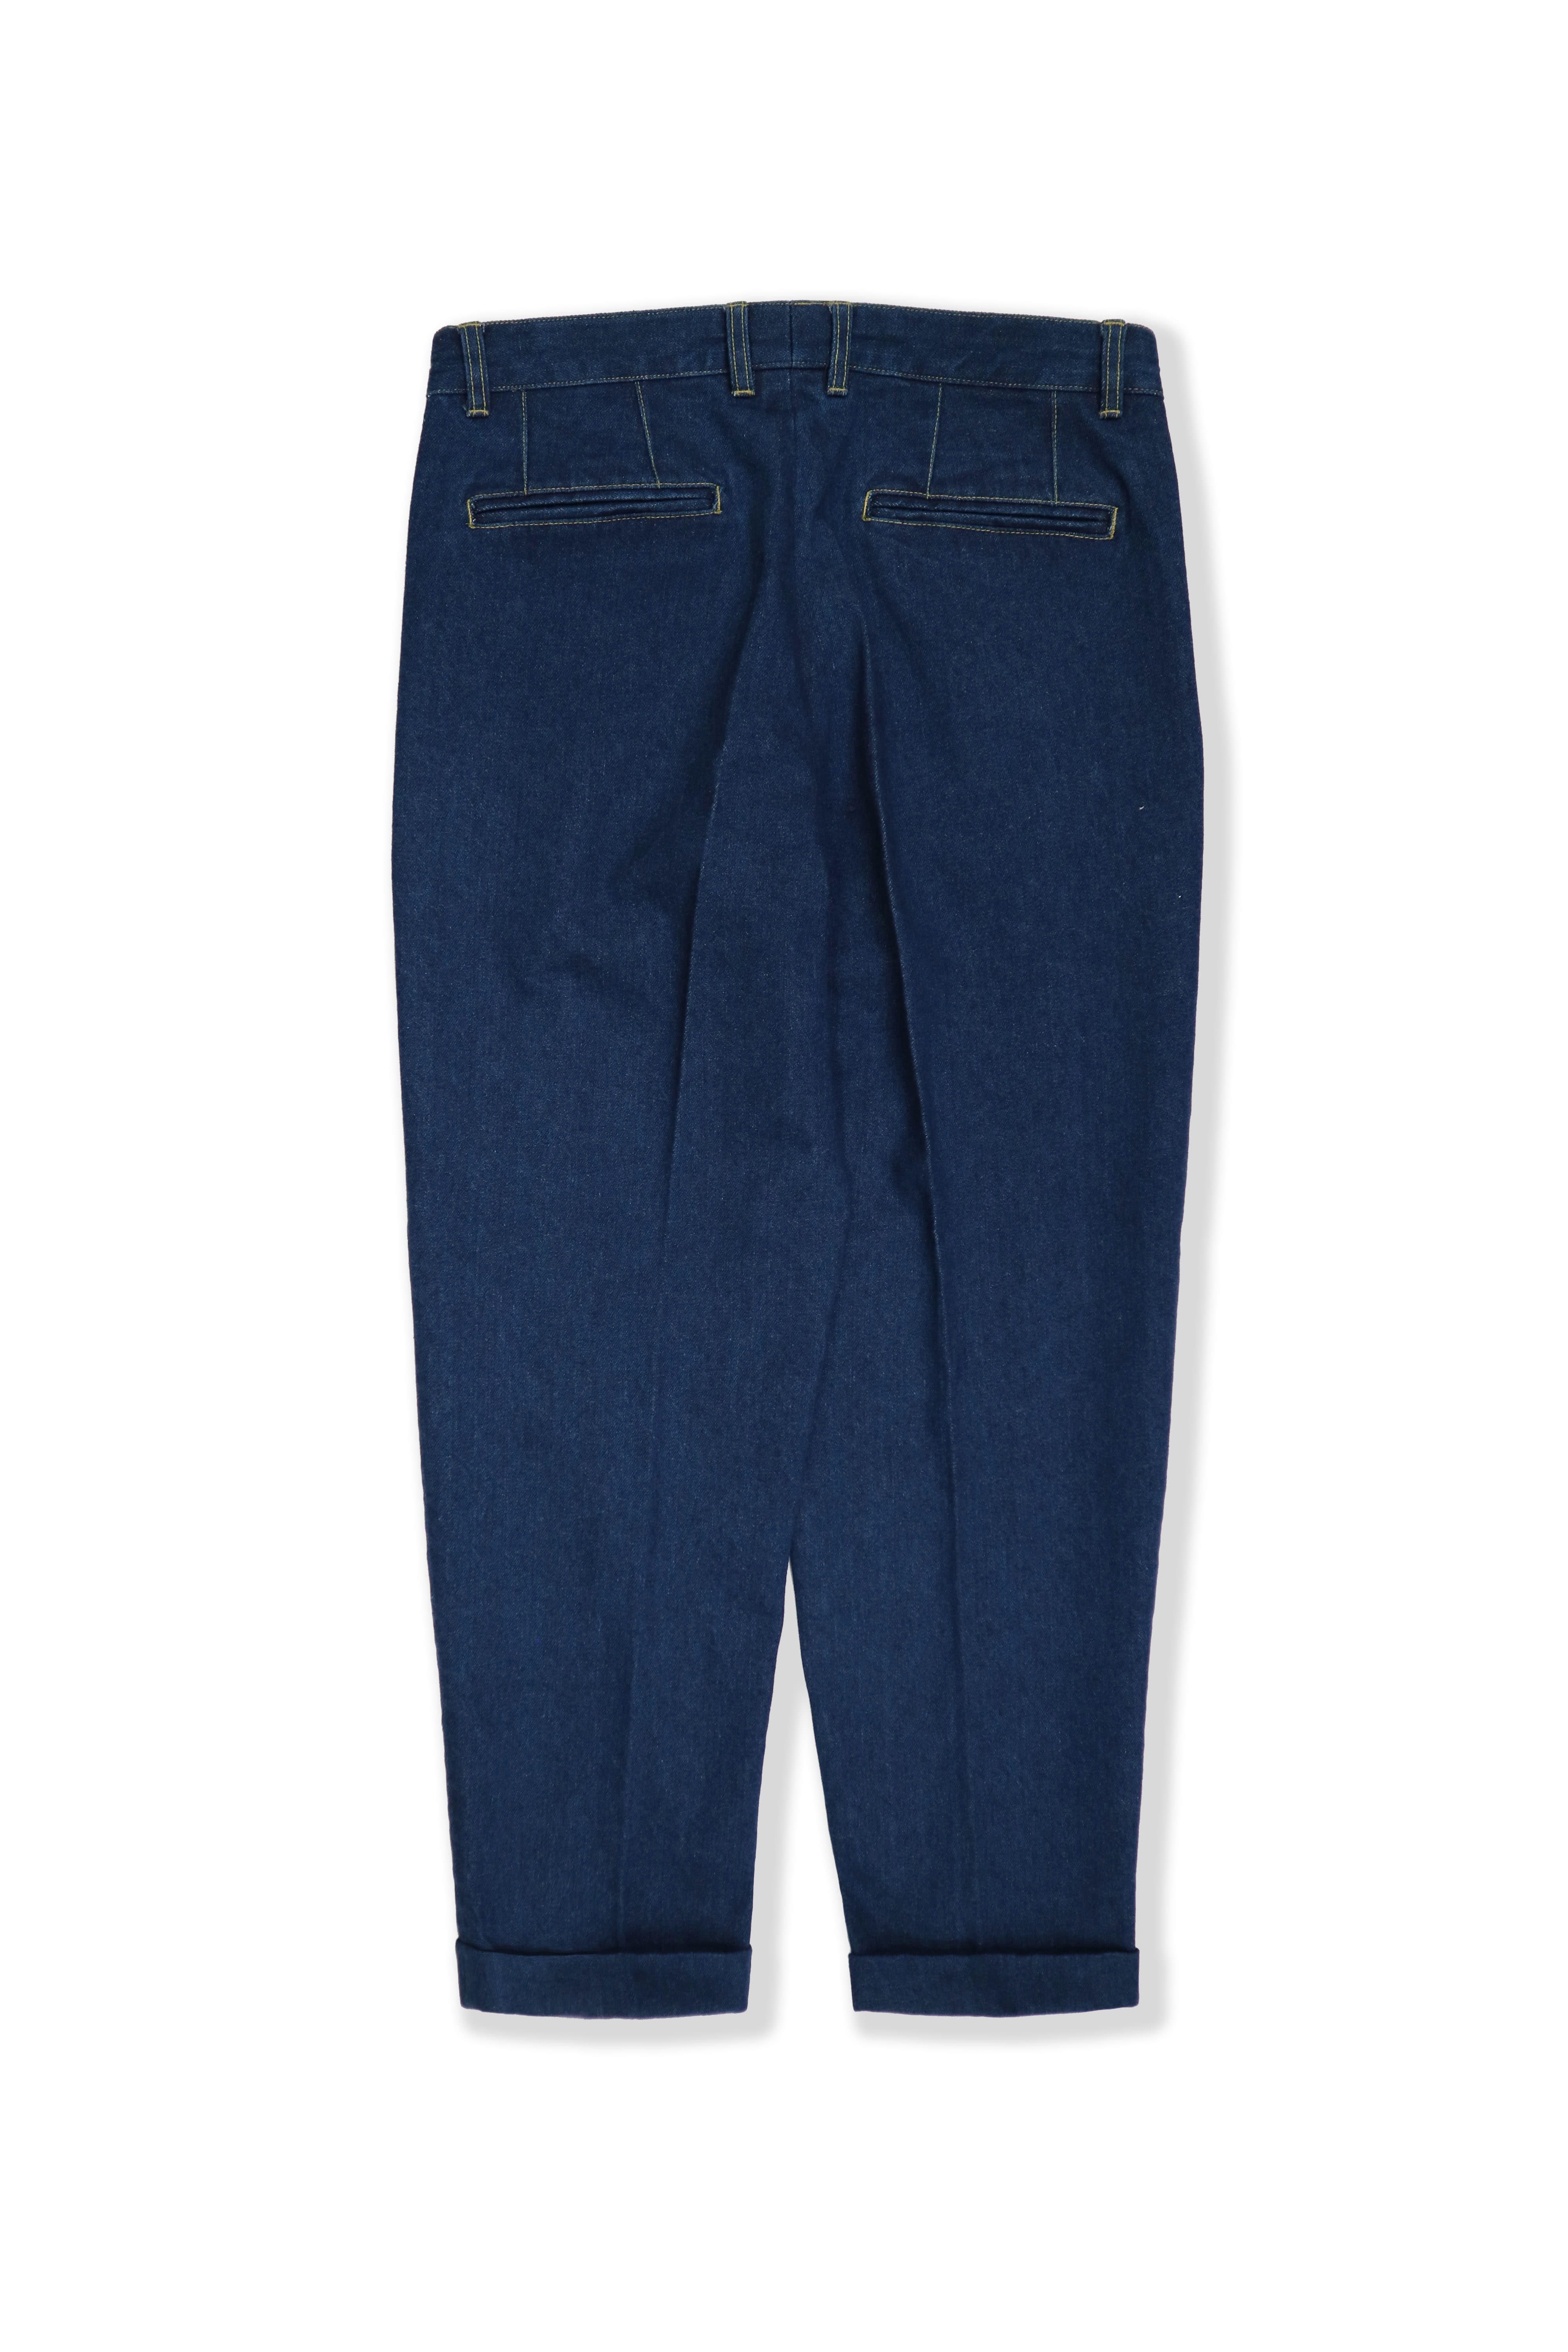 2 pleats trousers - washed denim